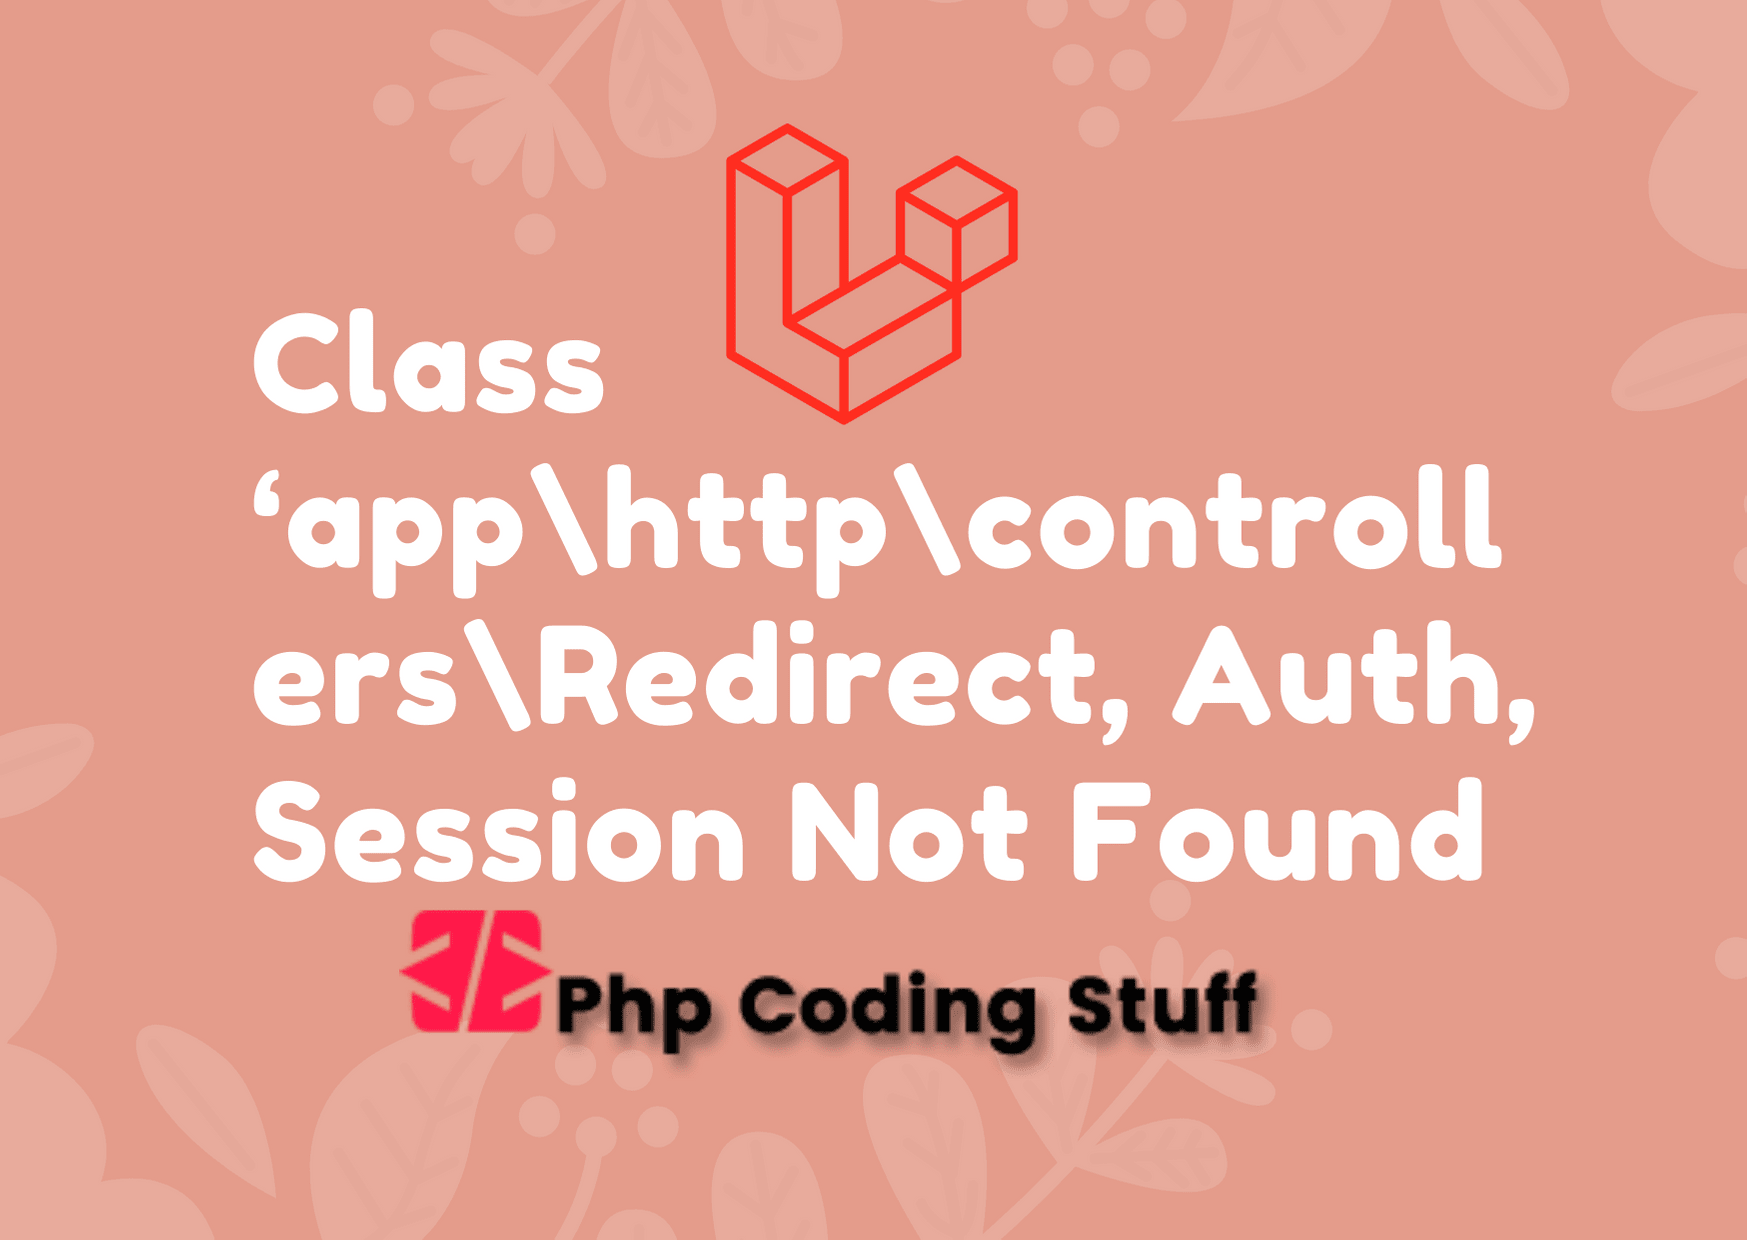 Class app http controllers Auth, Redirect, Session, etc. Not Found